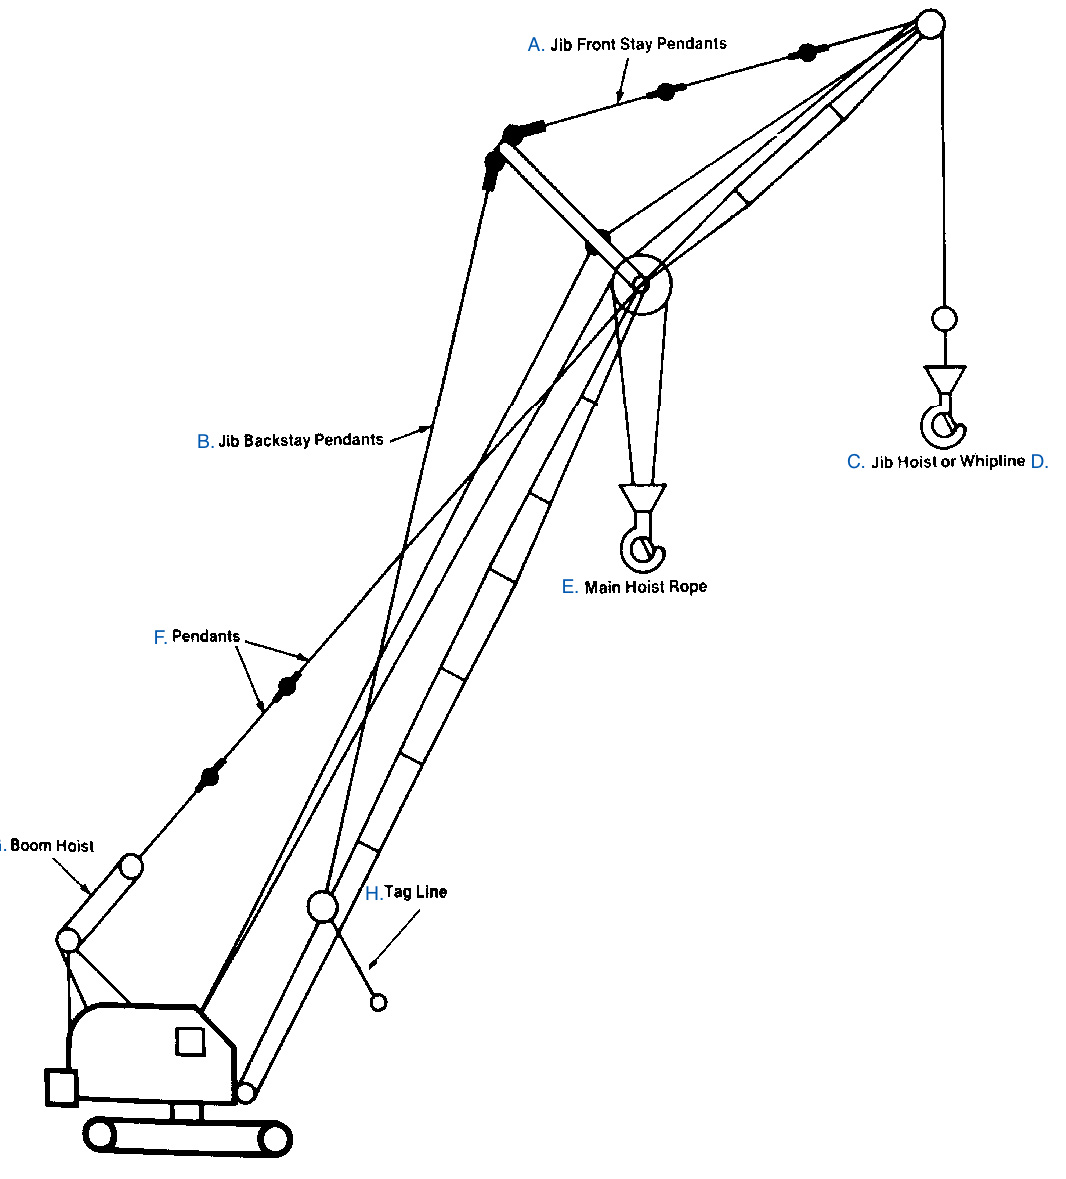 Construction Crane Drawing At Getdrawings